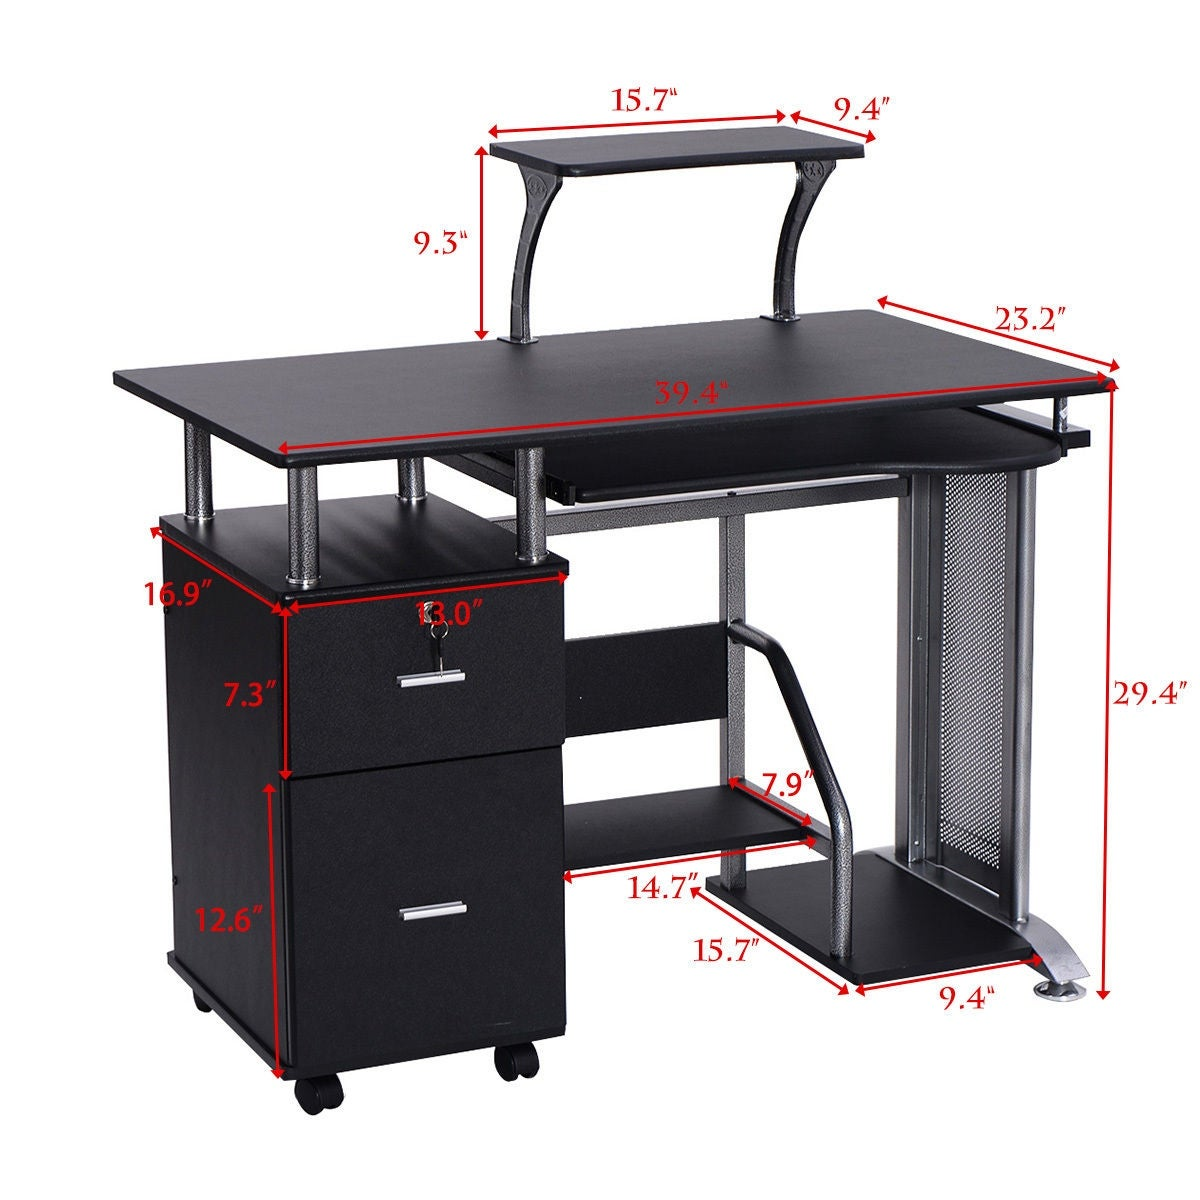 product garden shelves shipping today overstock pc writing computer laptop home desk workstation storage free shelf study with table costway